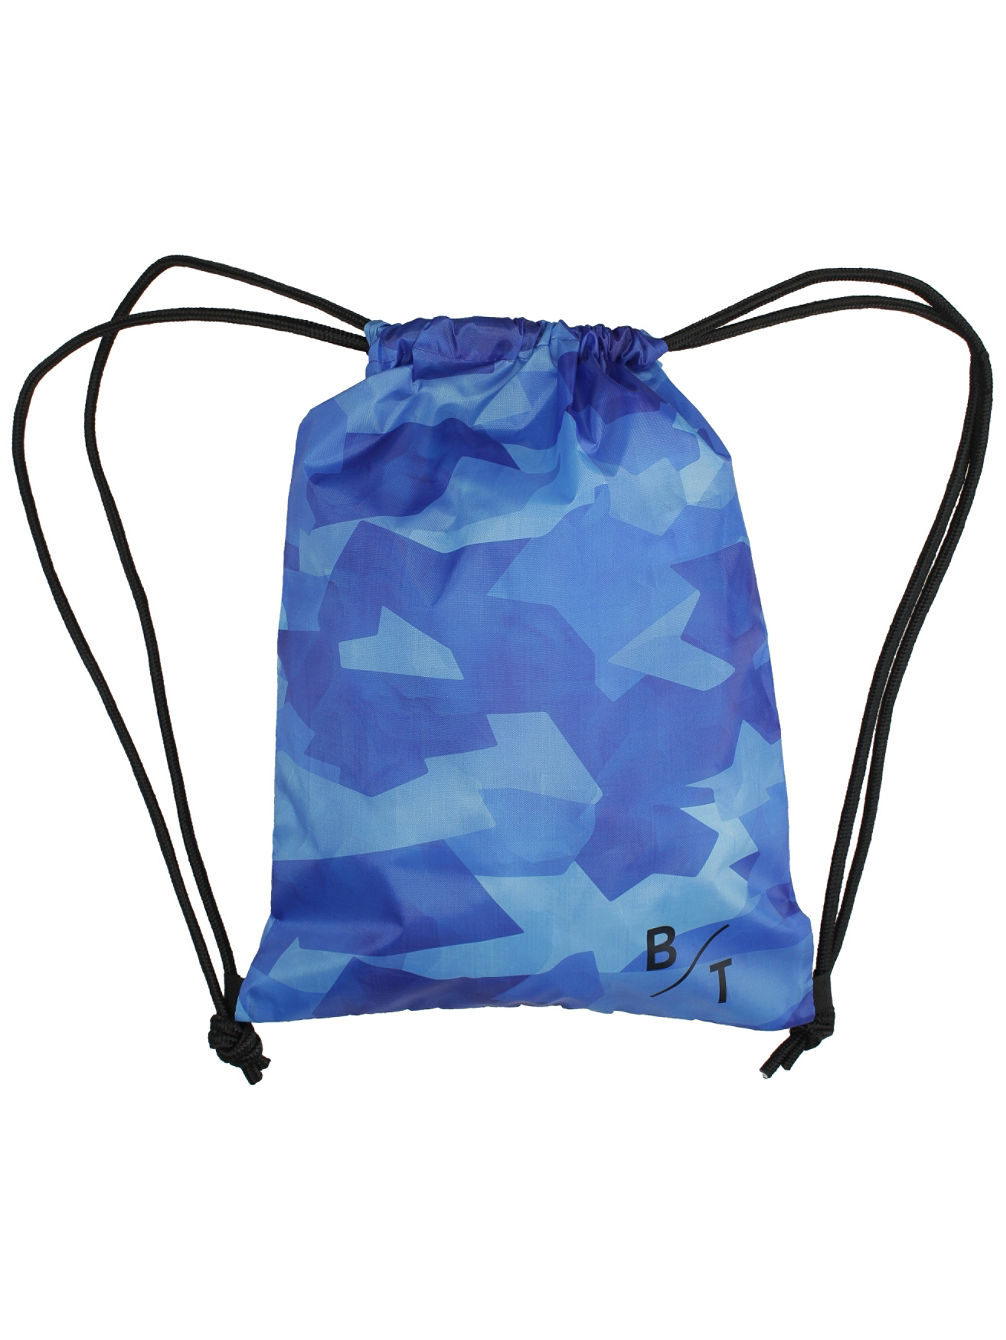 BT Blue Camo Gymbag